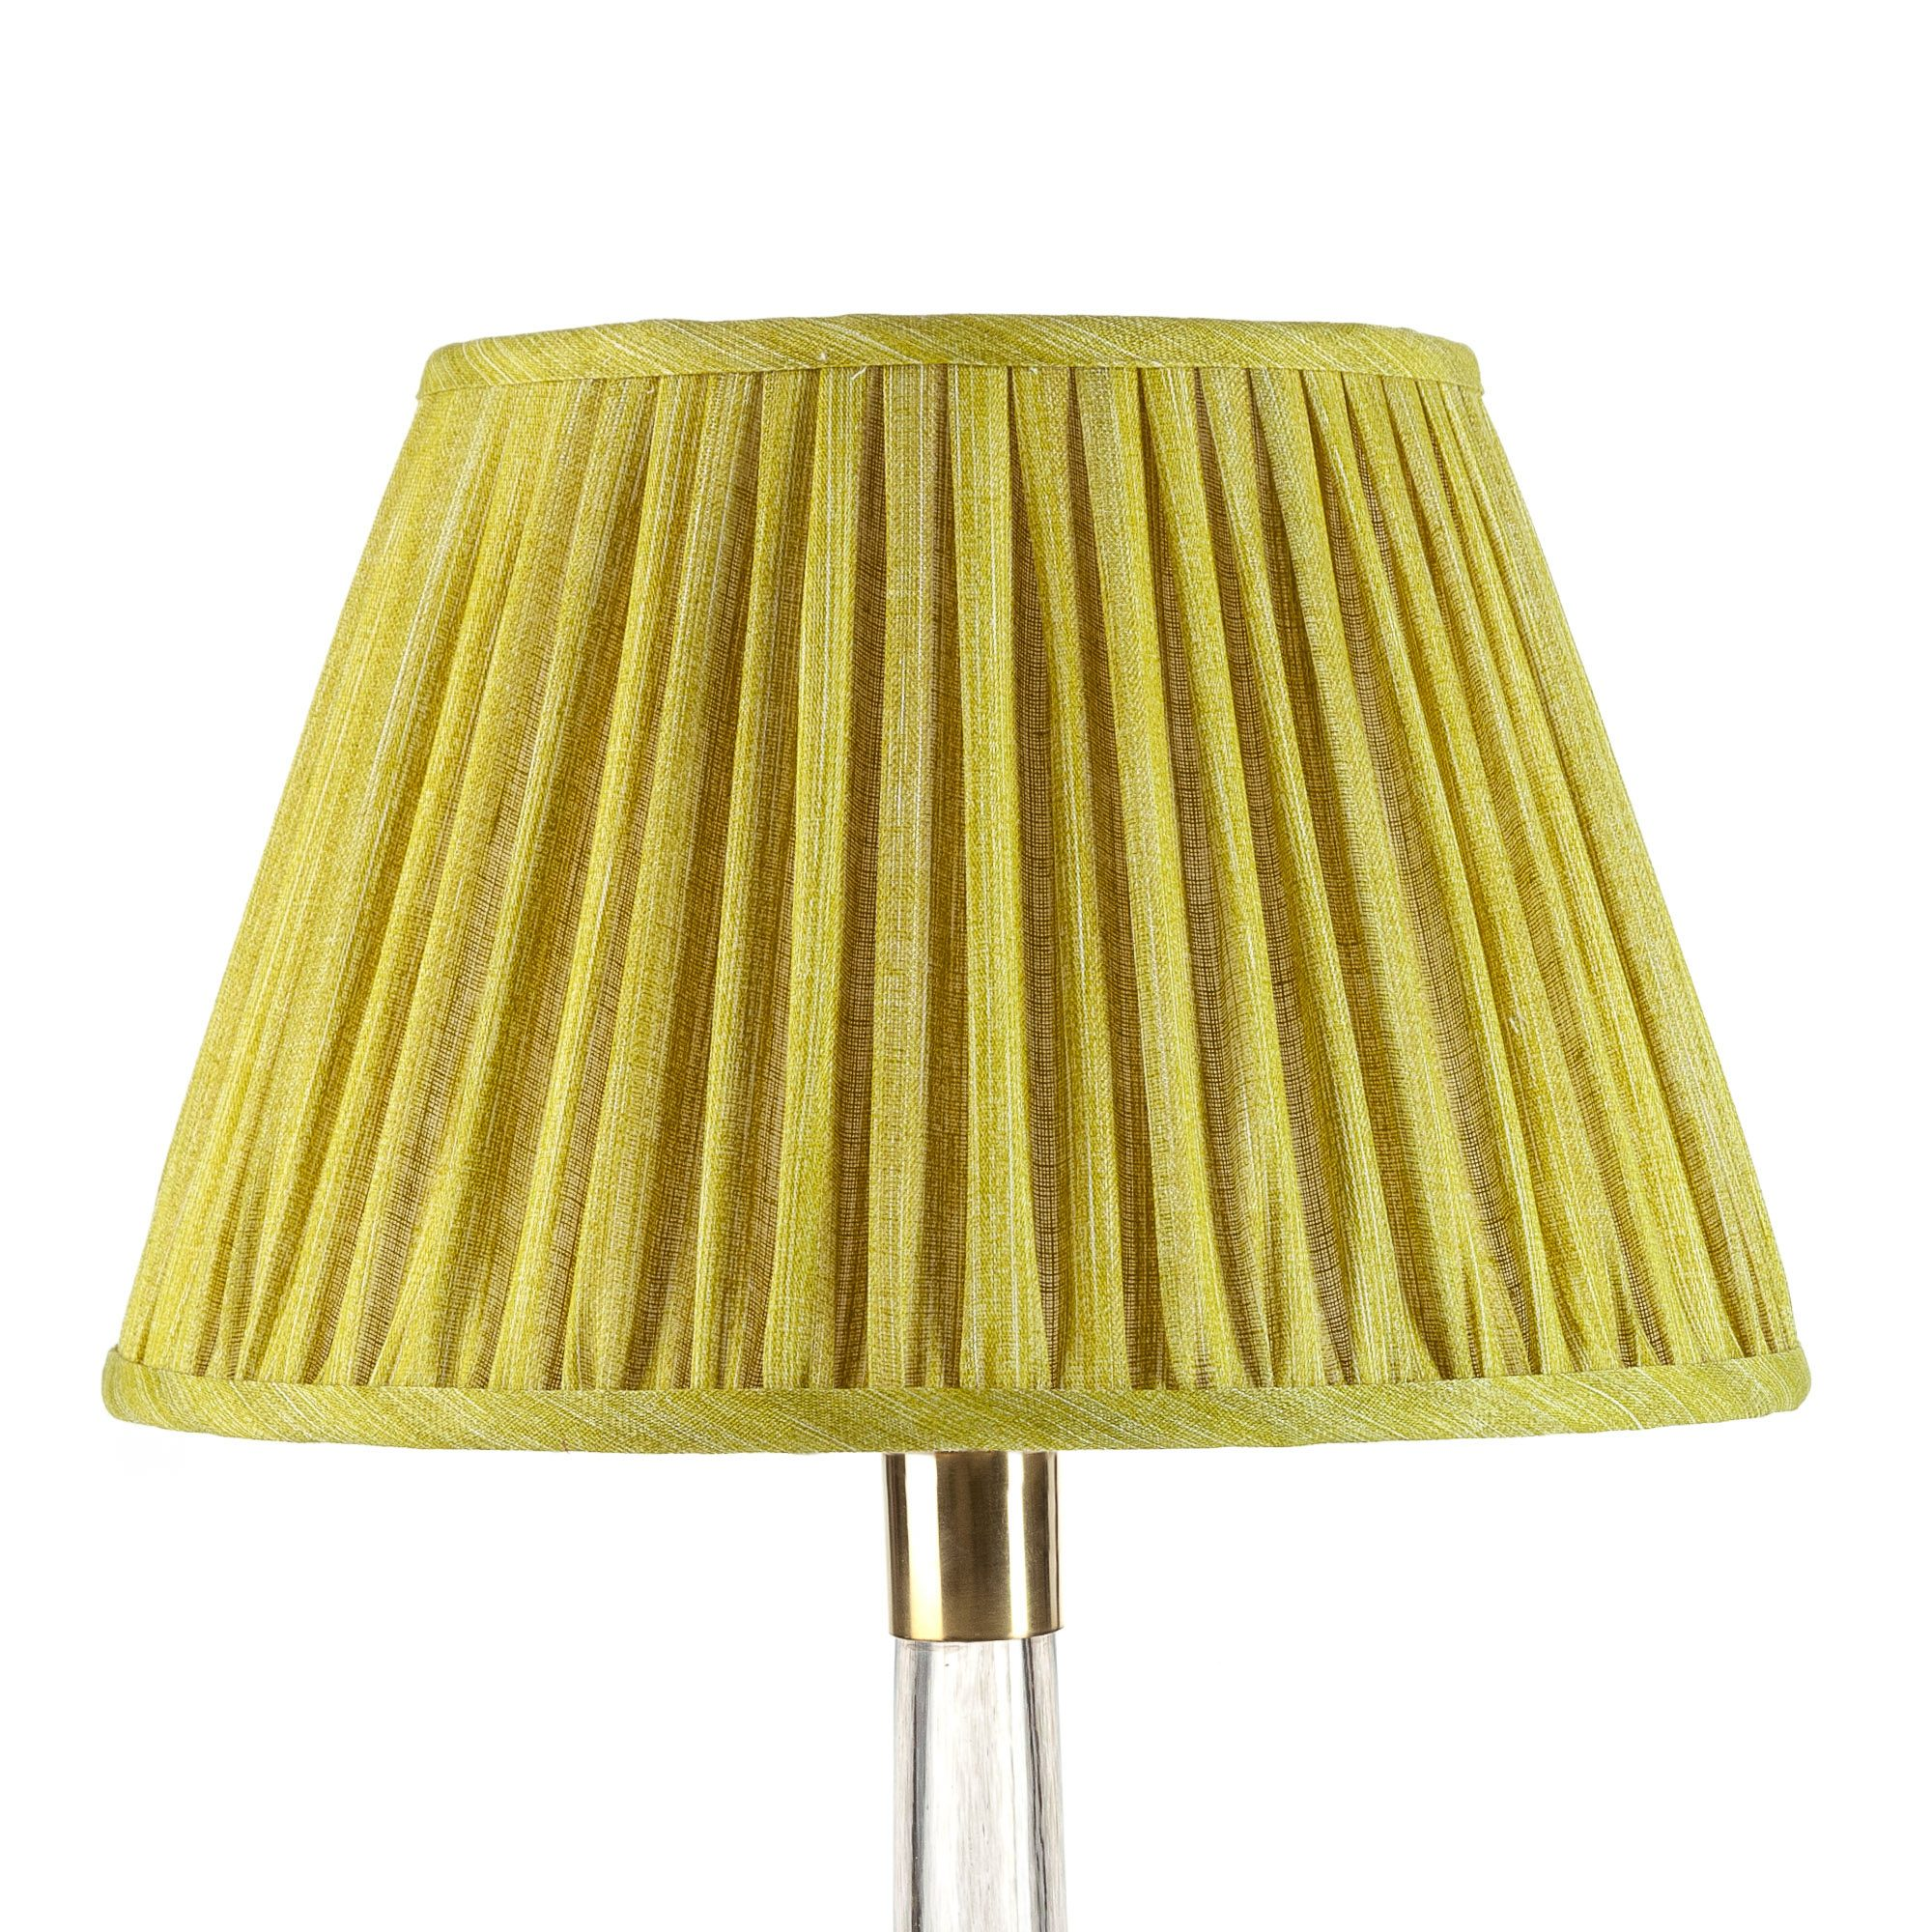 pg-048-empire-gathered-lampshade-in-euphorbia-plain-048-1